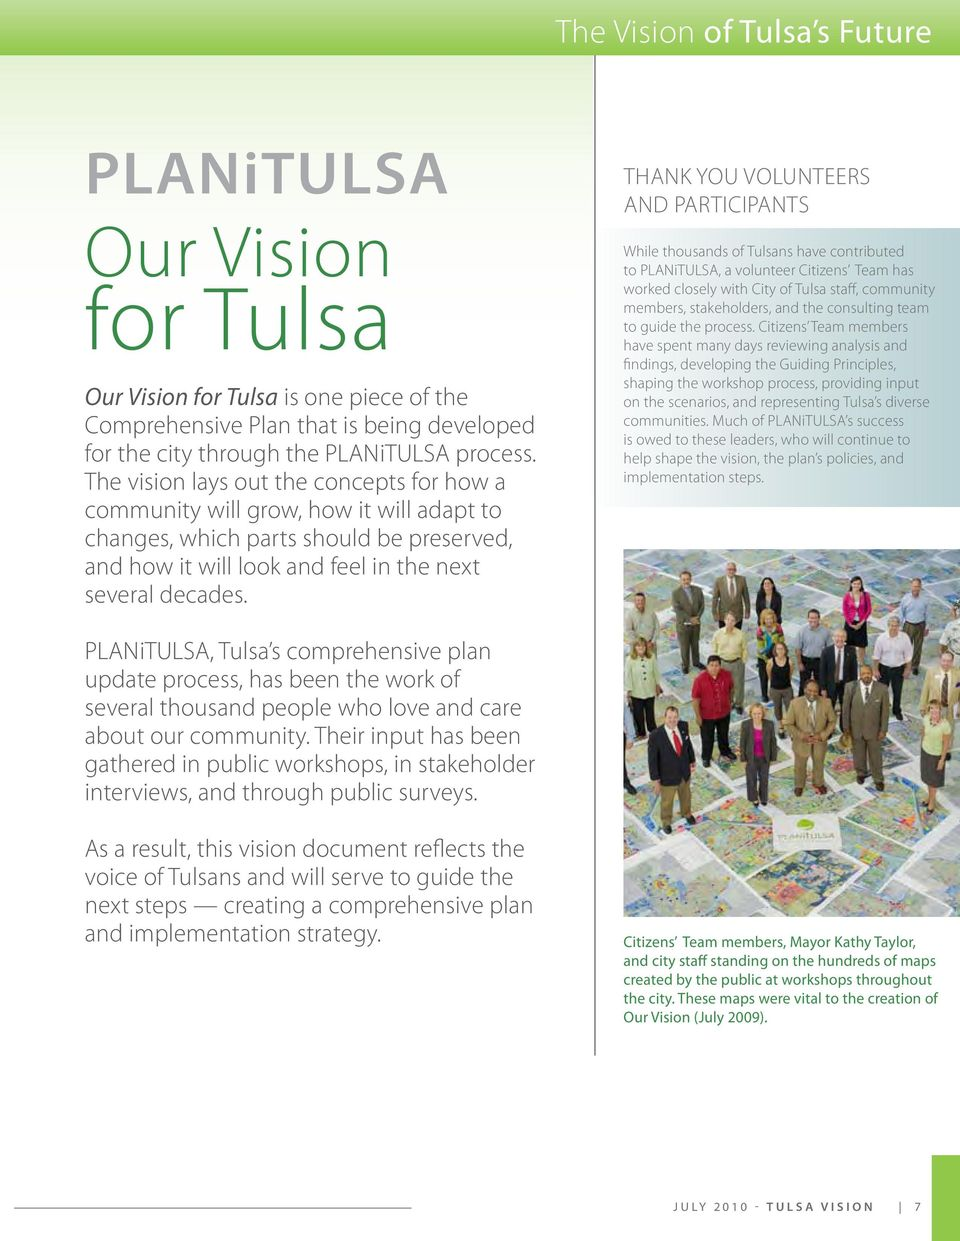 THAnk You VolunTEERS AND PARTICIPANTS While thousands of Tulsans have contributed to PLANiTULSA, a volunteer Citizens Team has worked closely with City of Tulsa staff, community members,